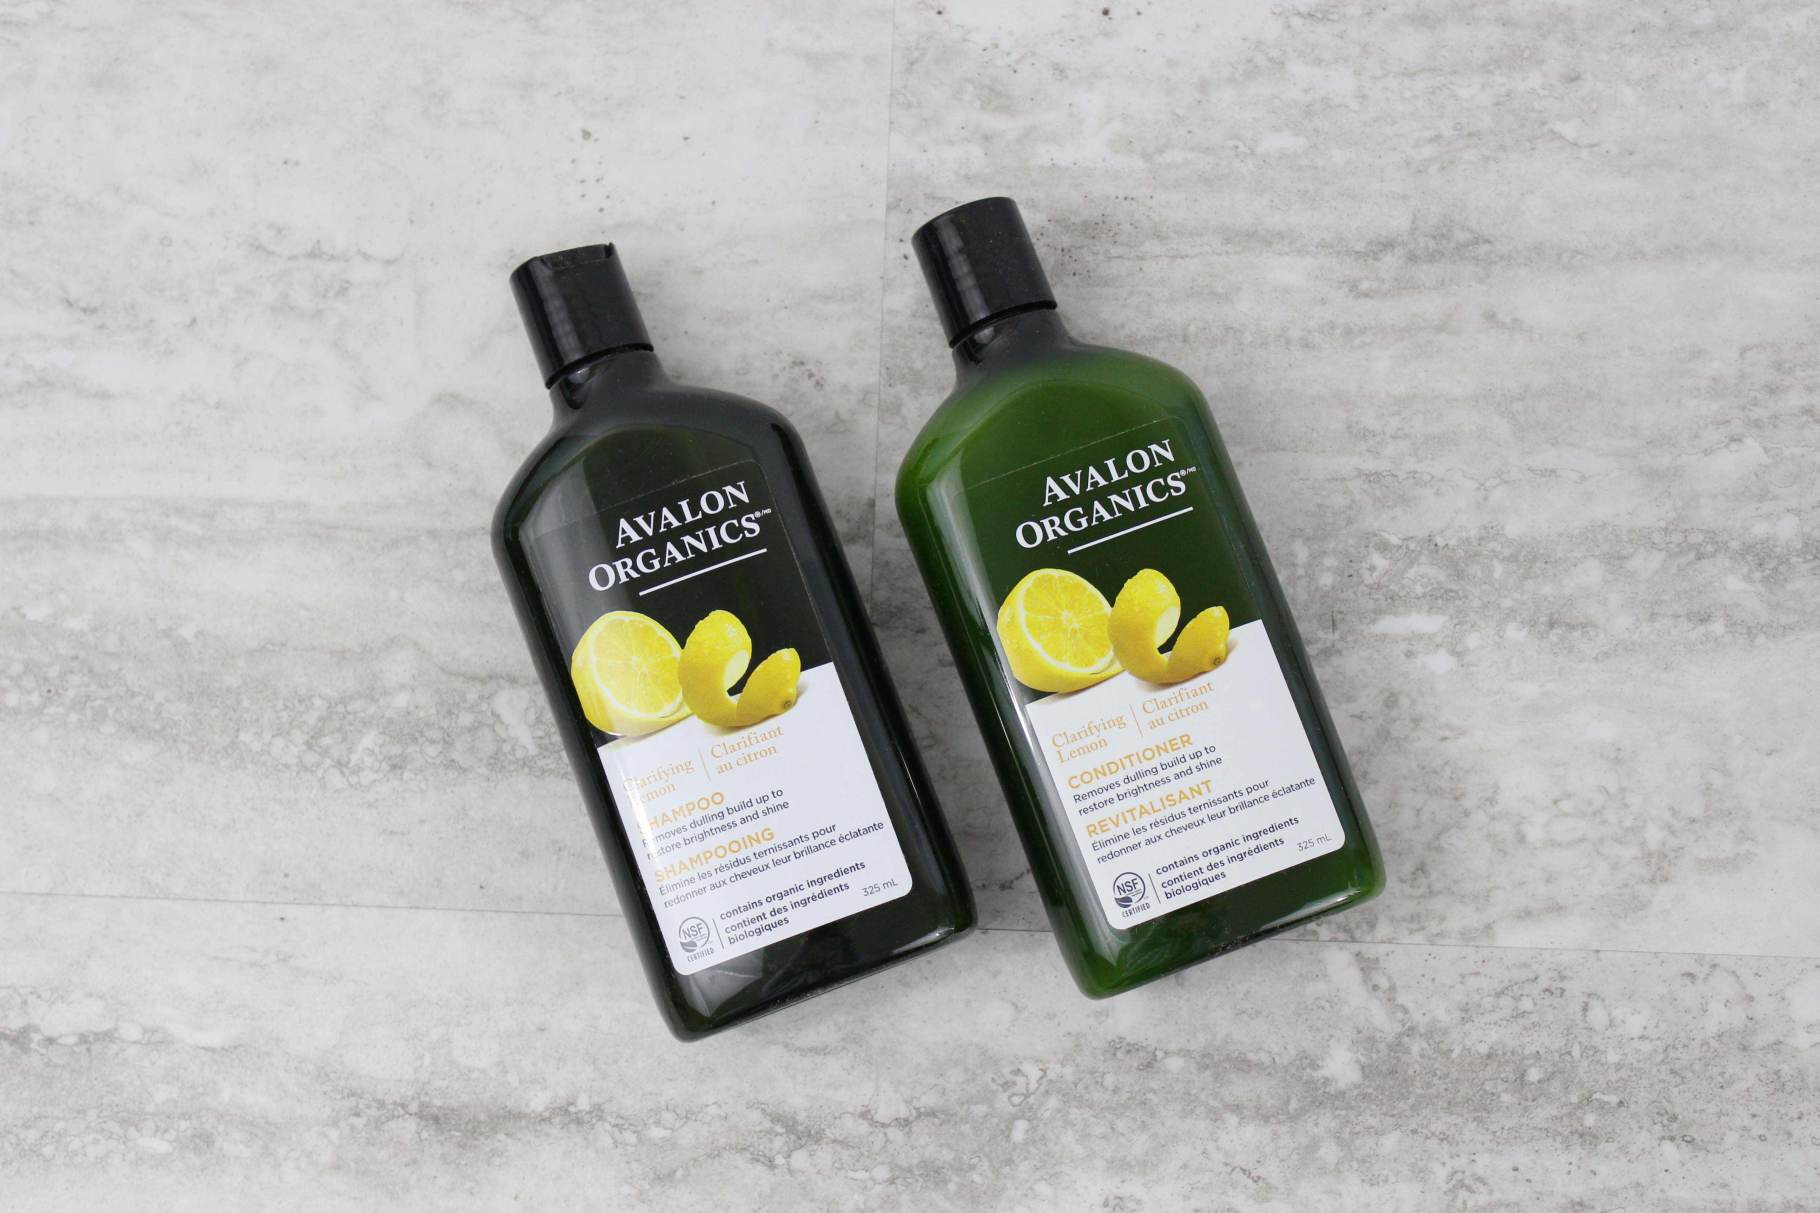 Avalon Organics Lemon Clarifying Shampoo + Conditioner The conditioner has a lighter appearance and a more cream-like texture.